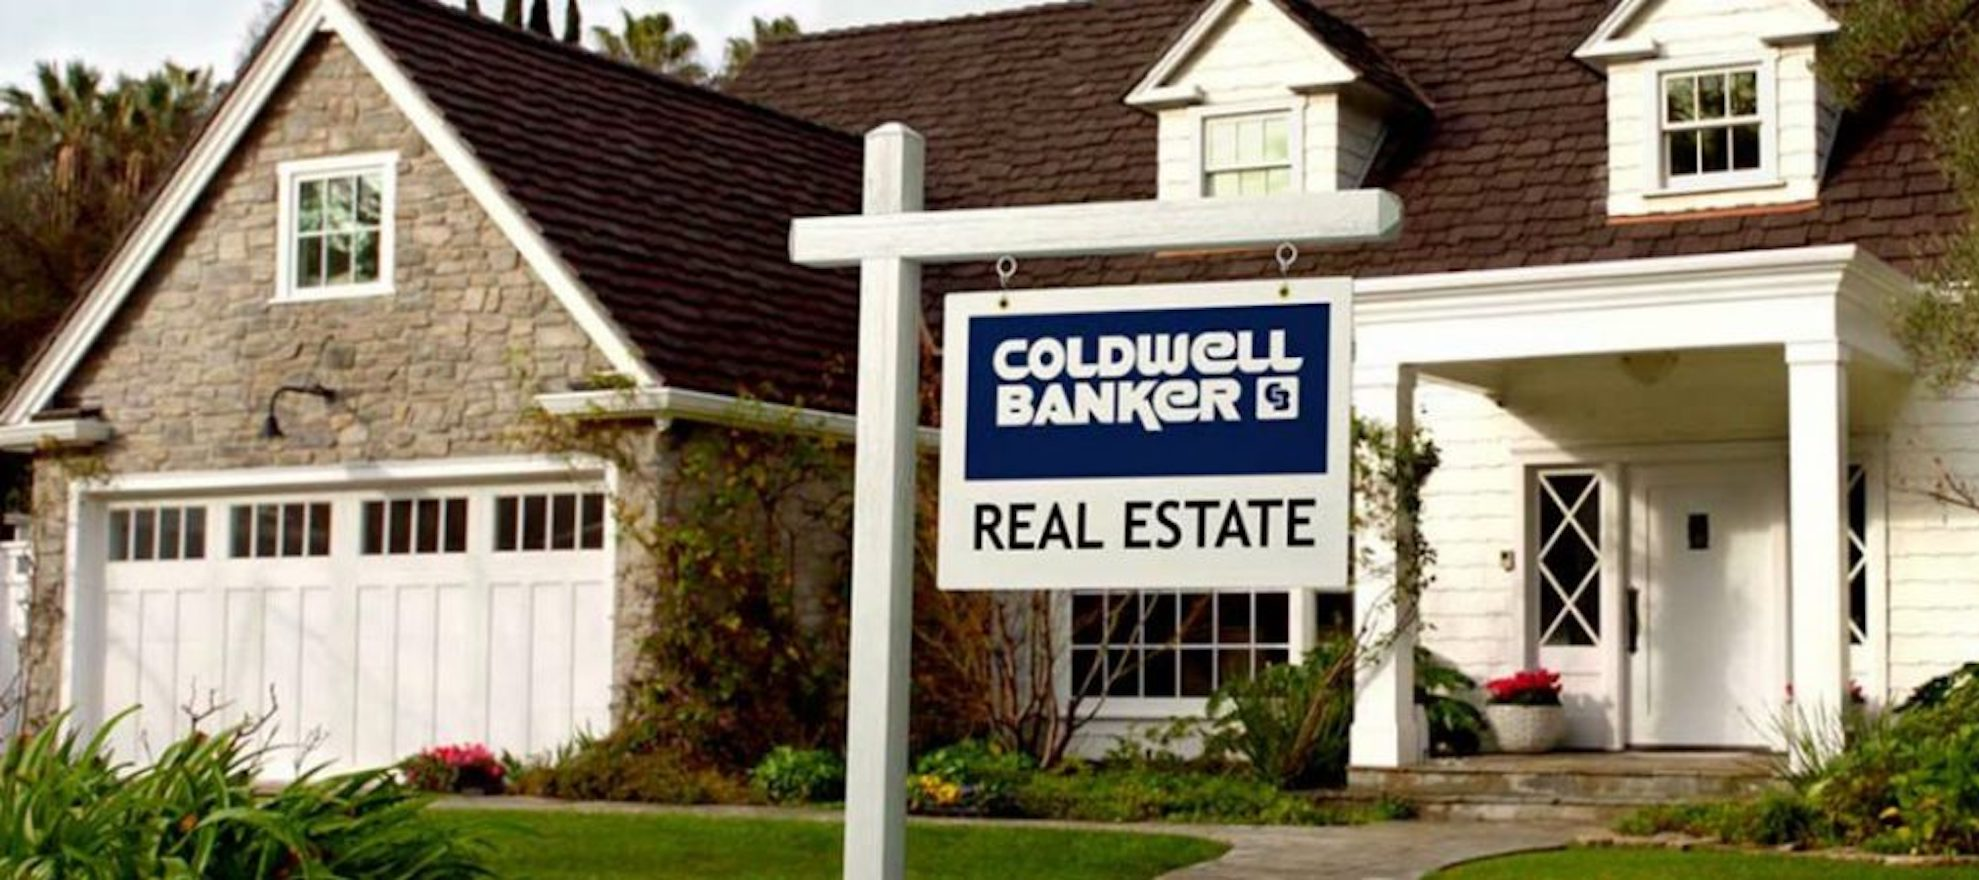 Coldwell Banker open to merging franchise and company-owned leadership, executives tell Inman